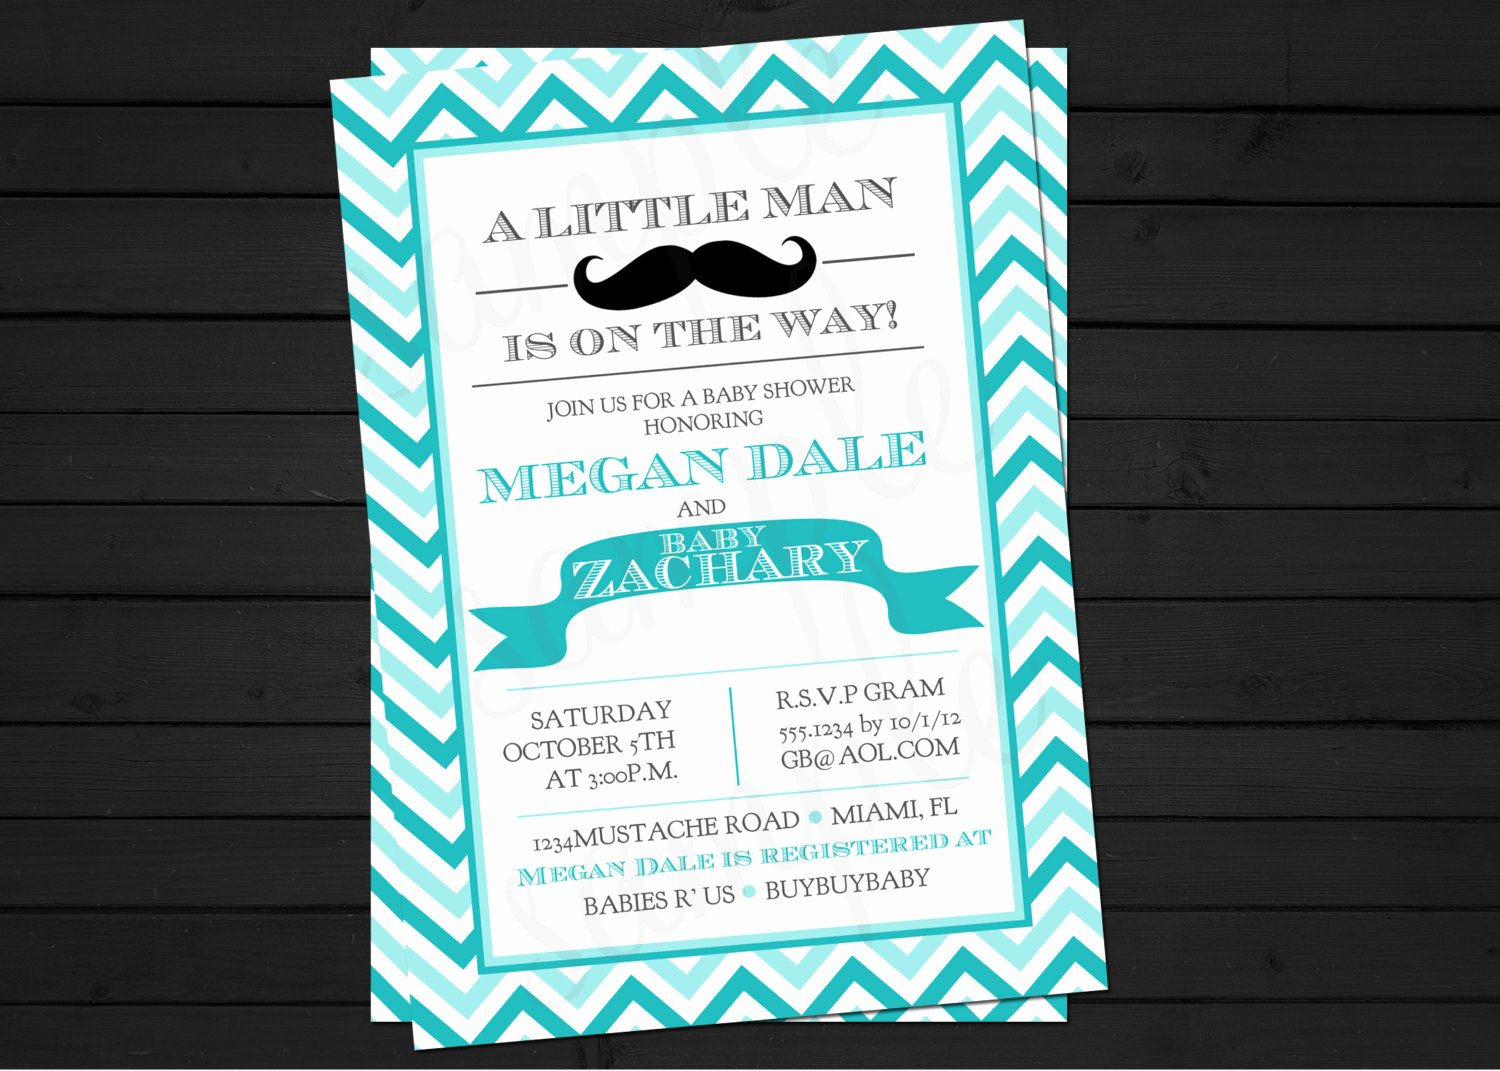 Mustache Baby Shower Invitations Templates New A New Little Man Mustache Bash Birthday or Baby by Shestutucutebtq